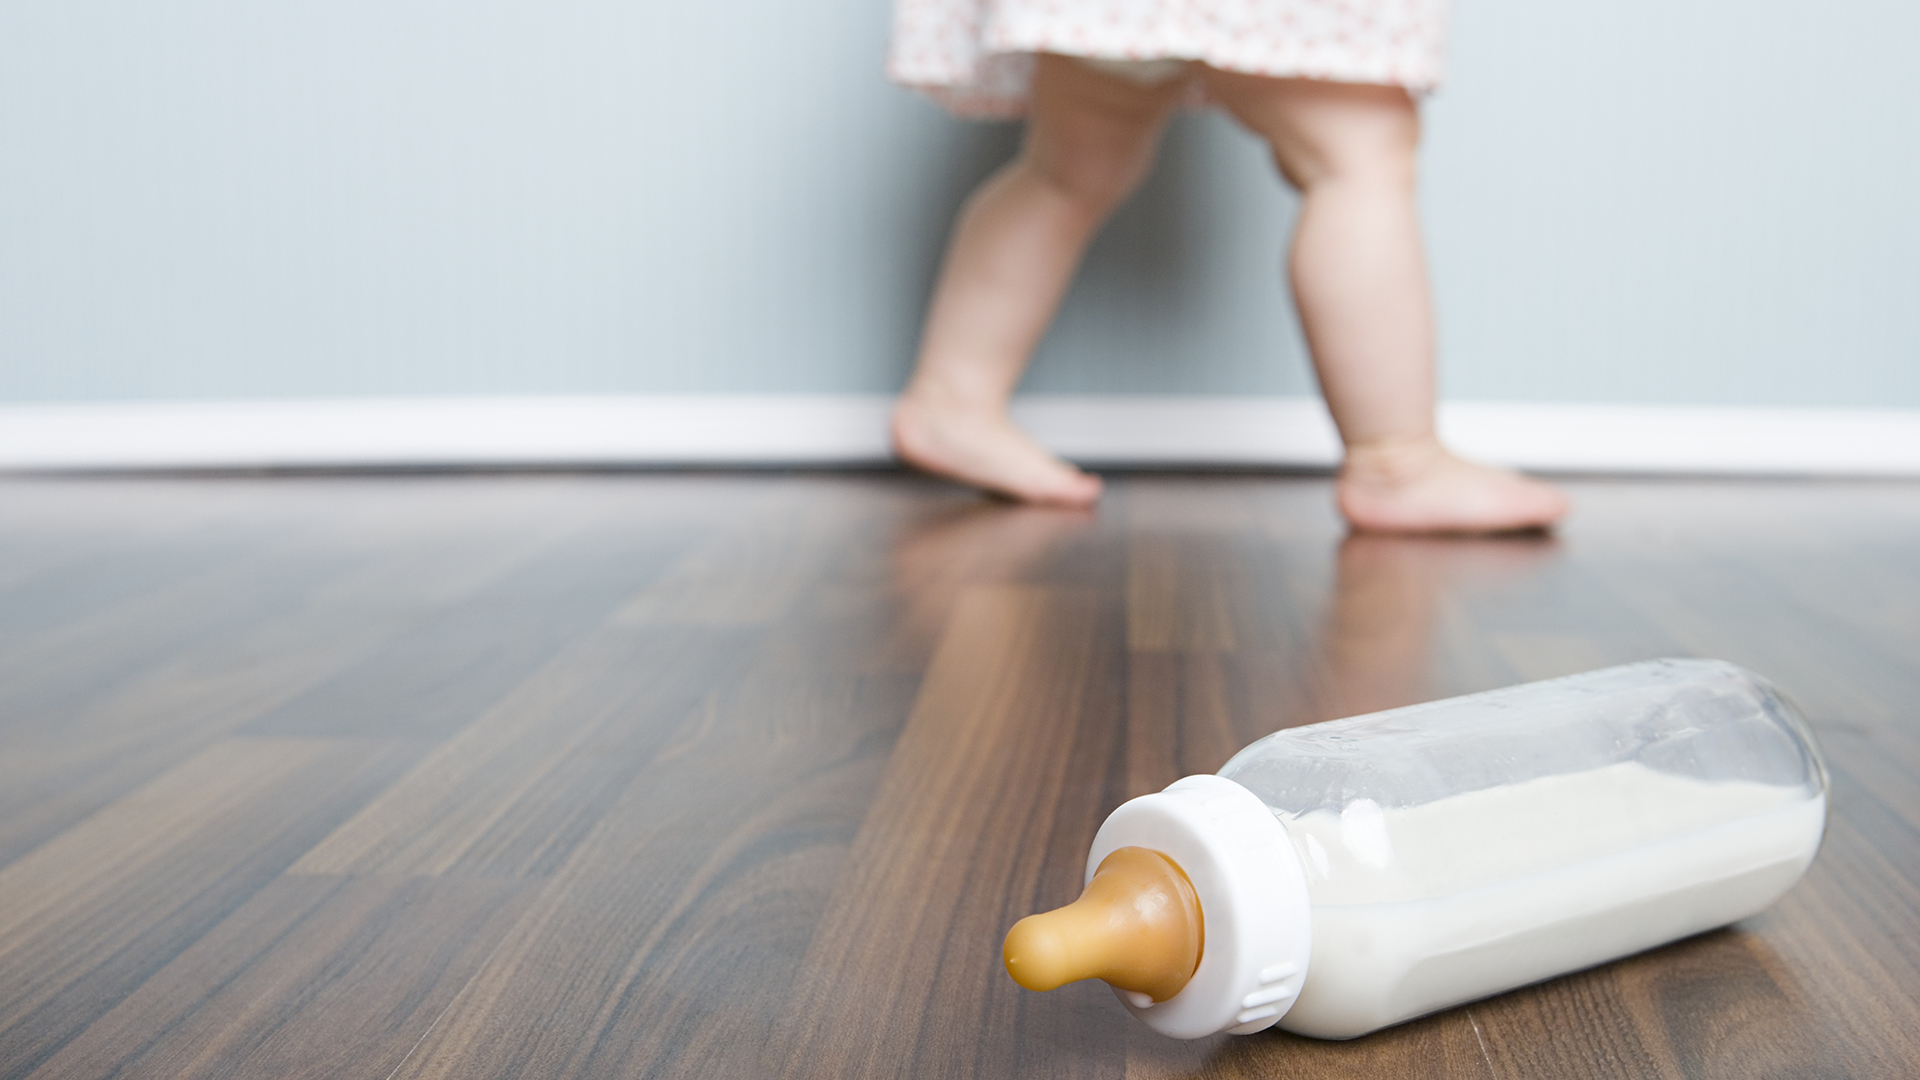 How To Remove Baby Formula Stains From Just About Anything